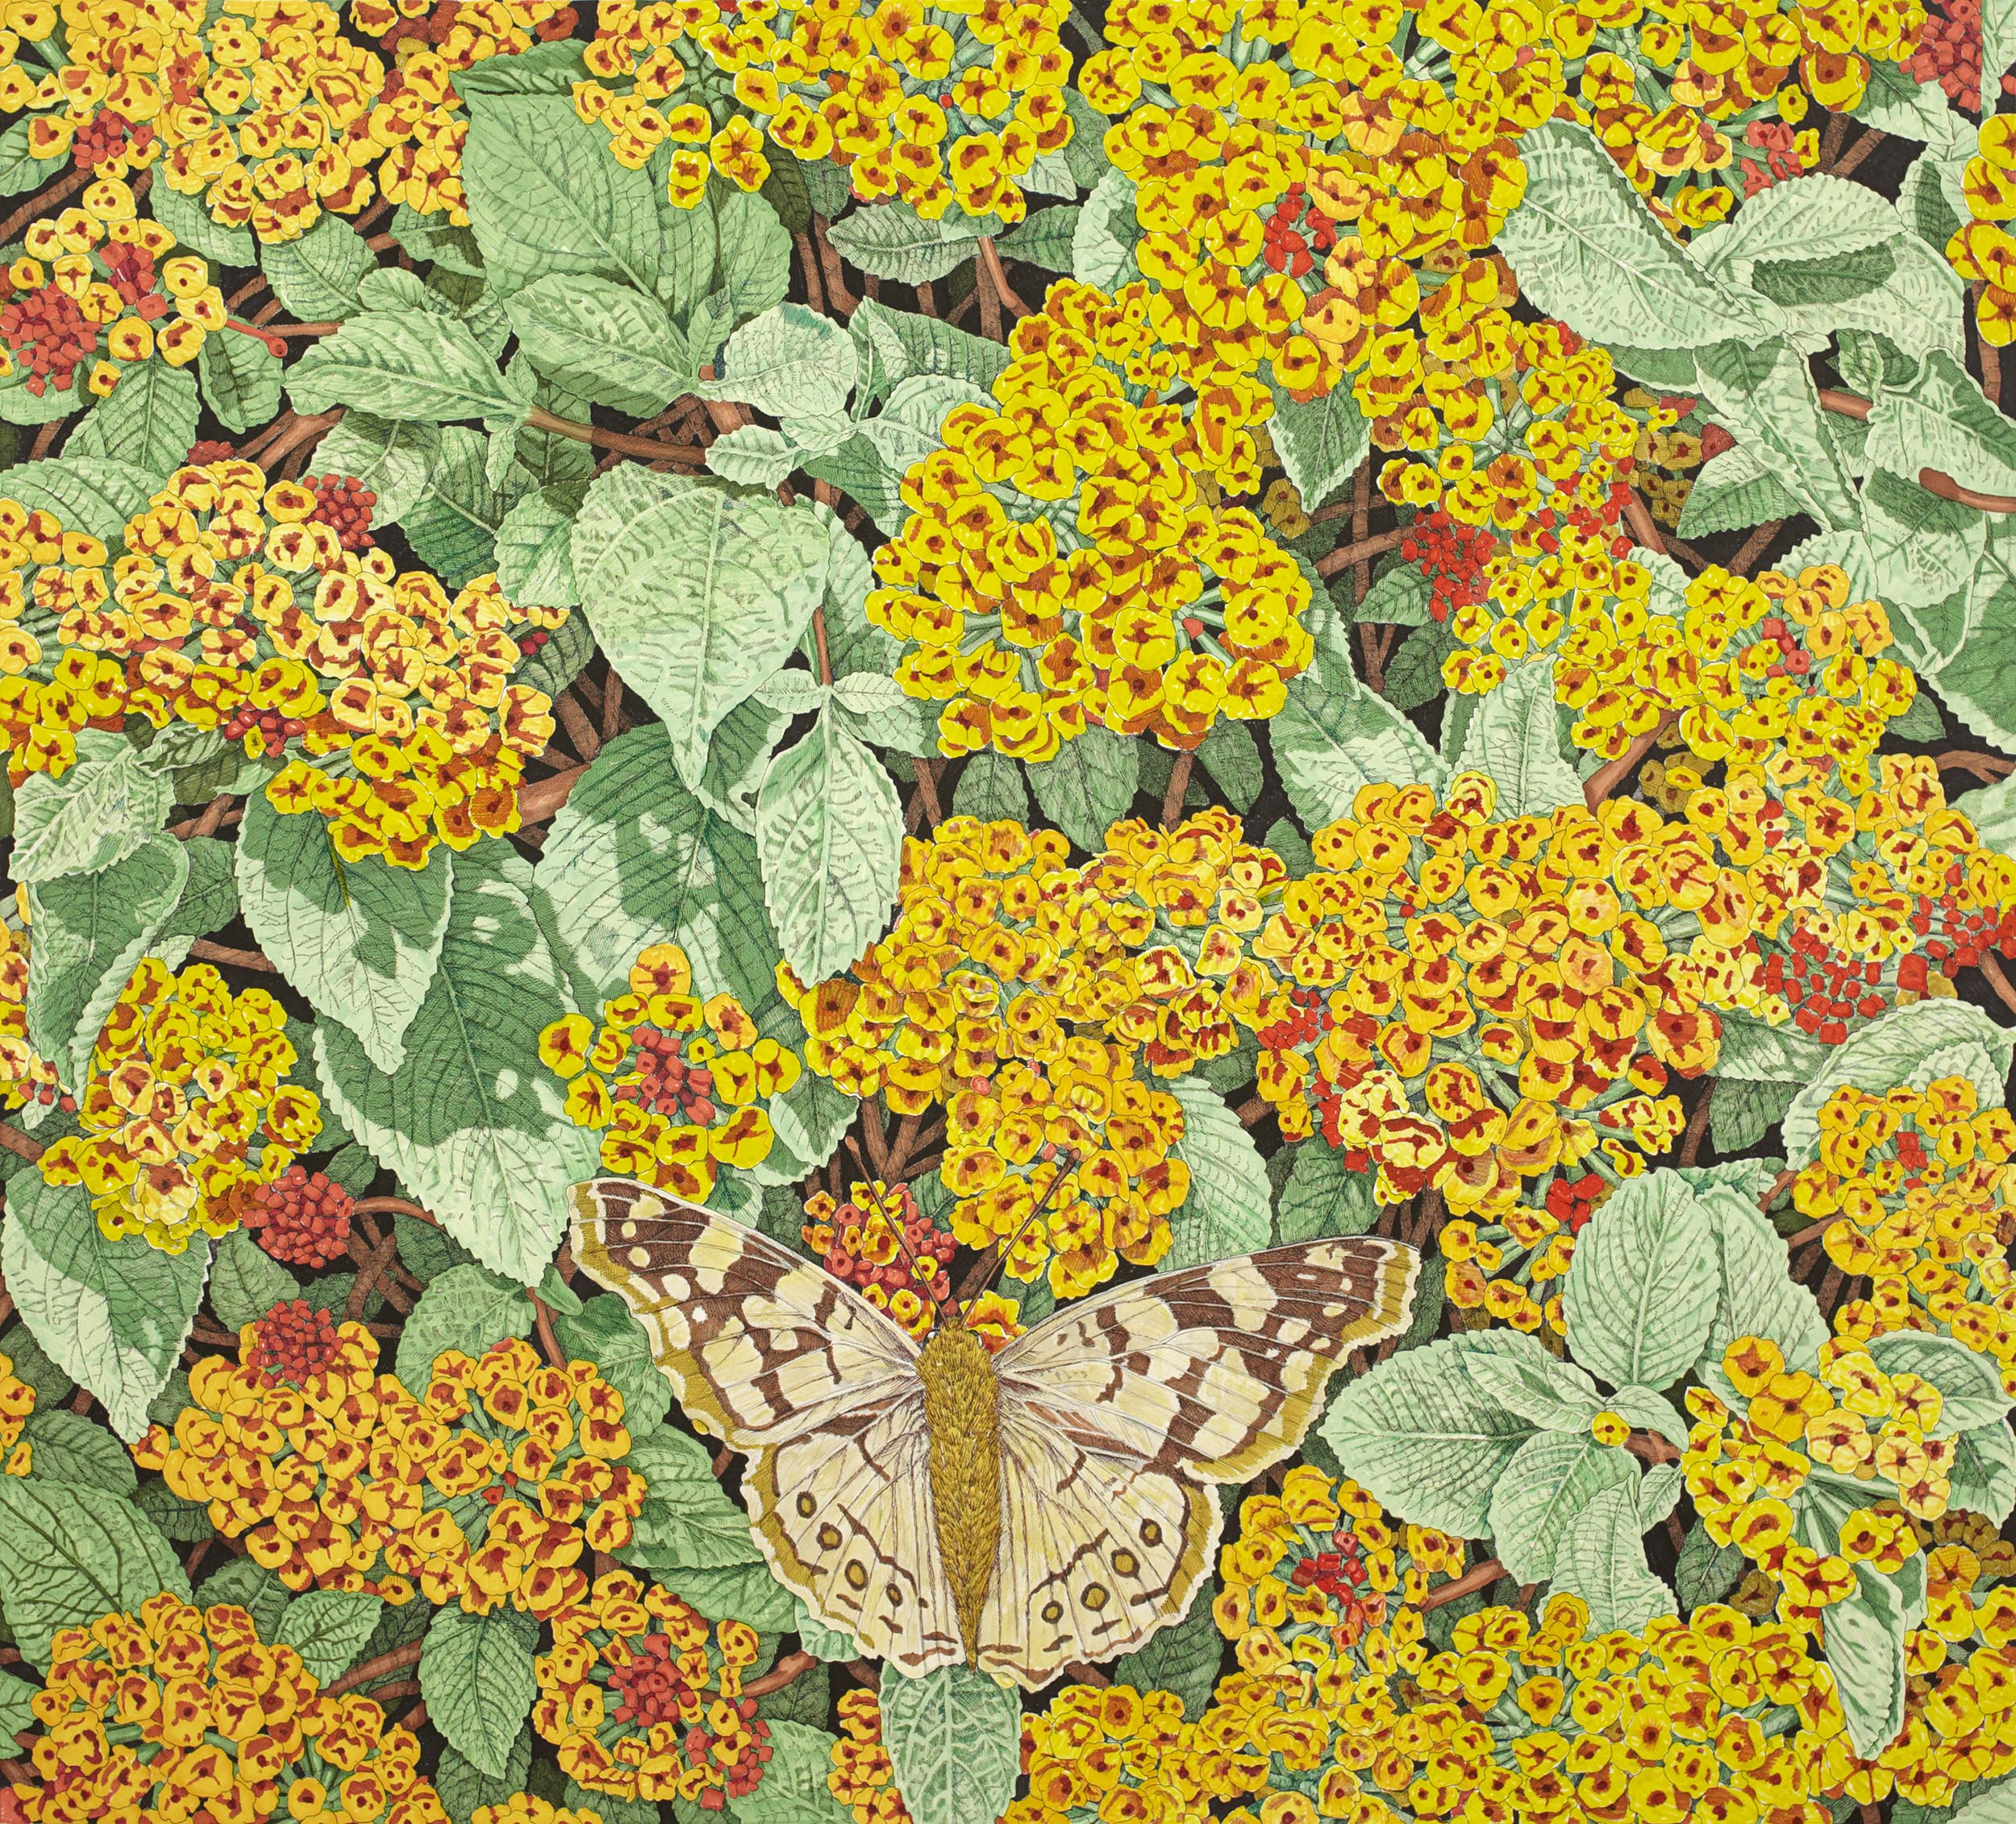 Moth on Lantana, 38 x 42 inches